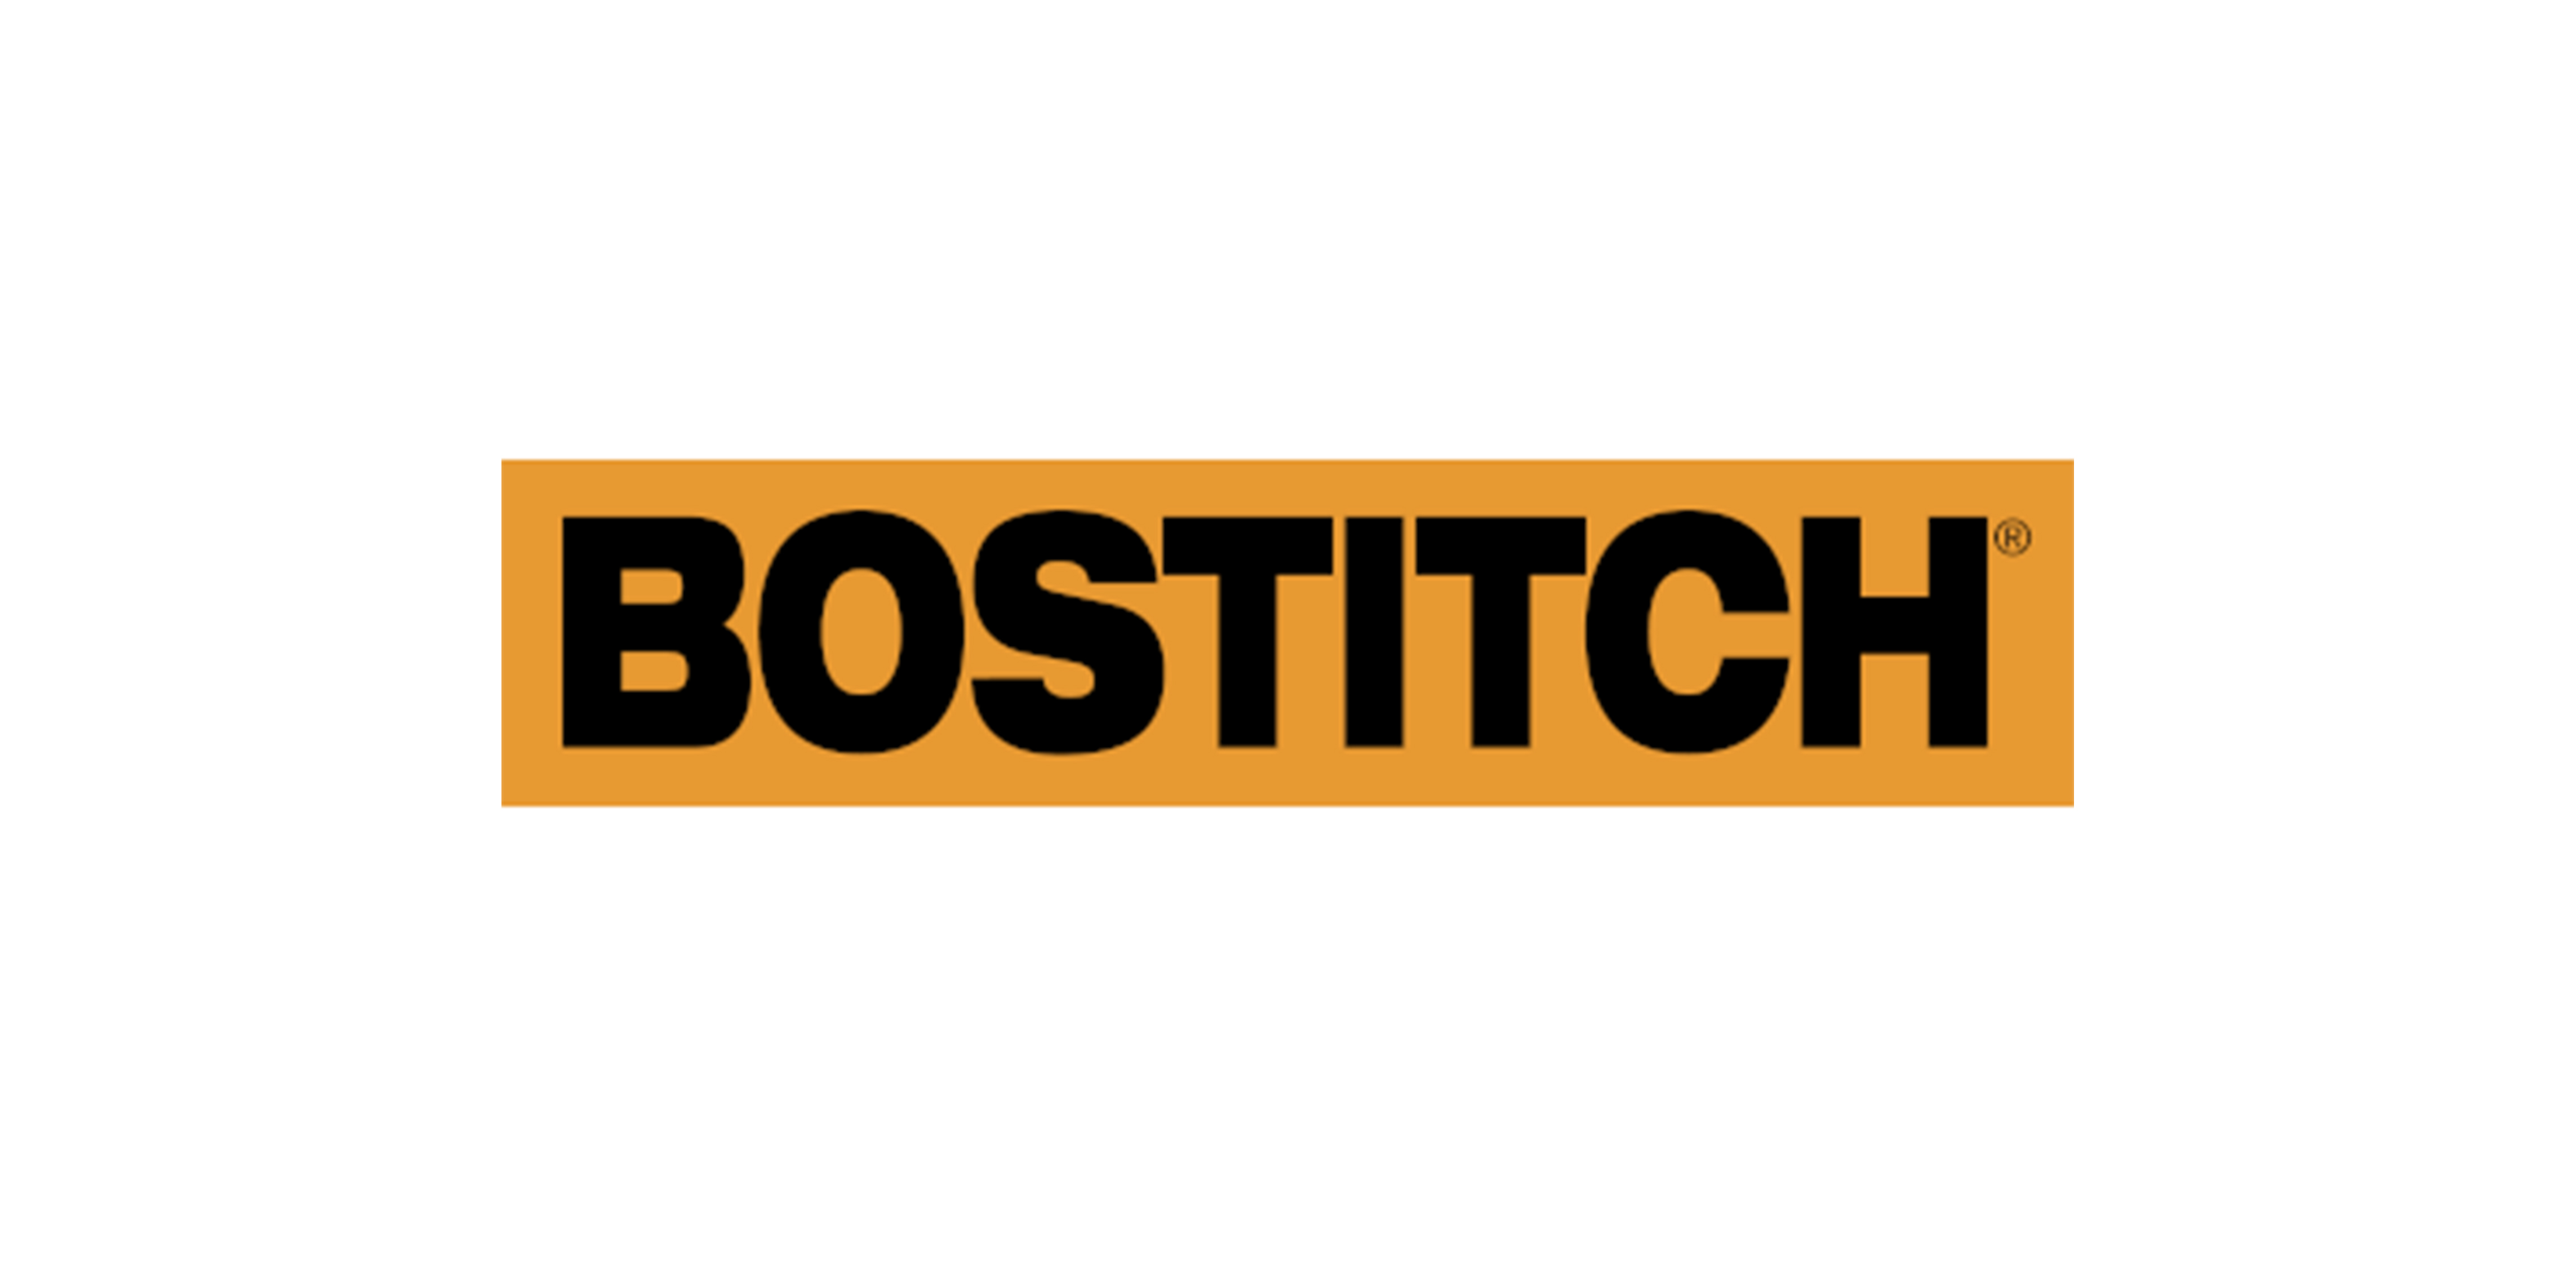 BOSTITCH en Ser Viso Mex